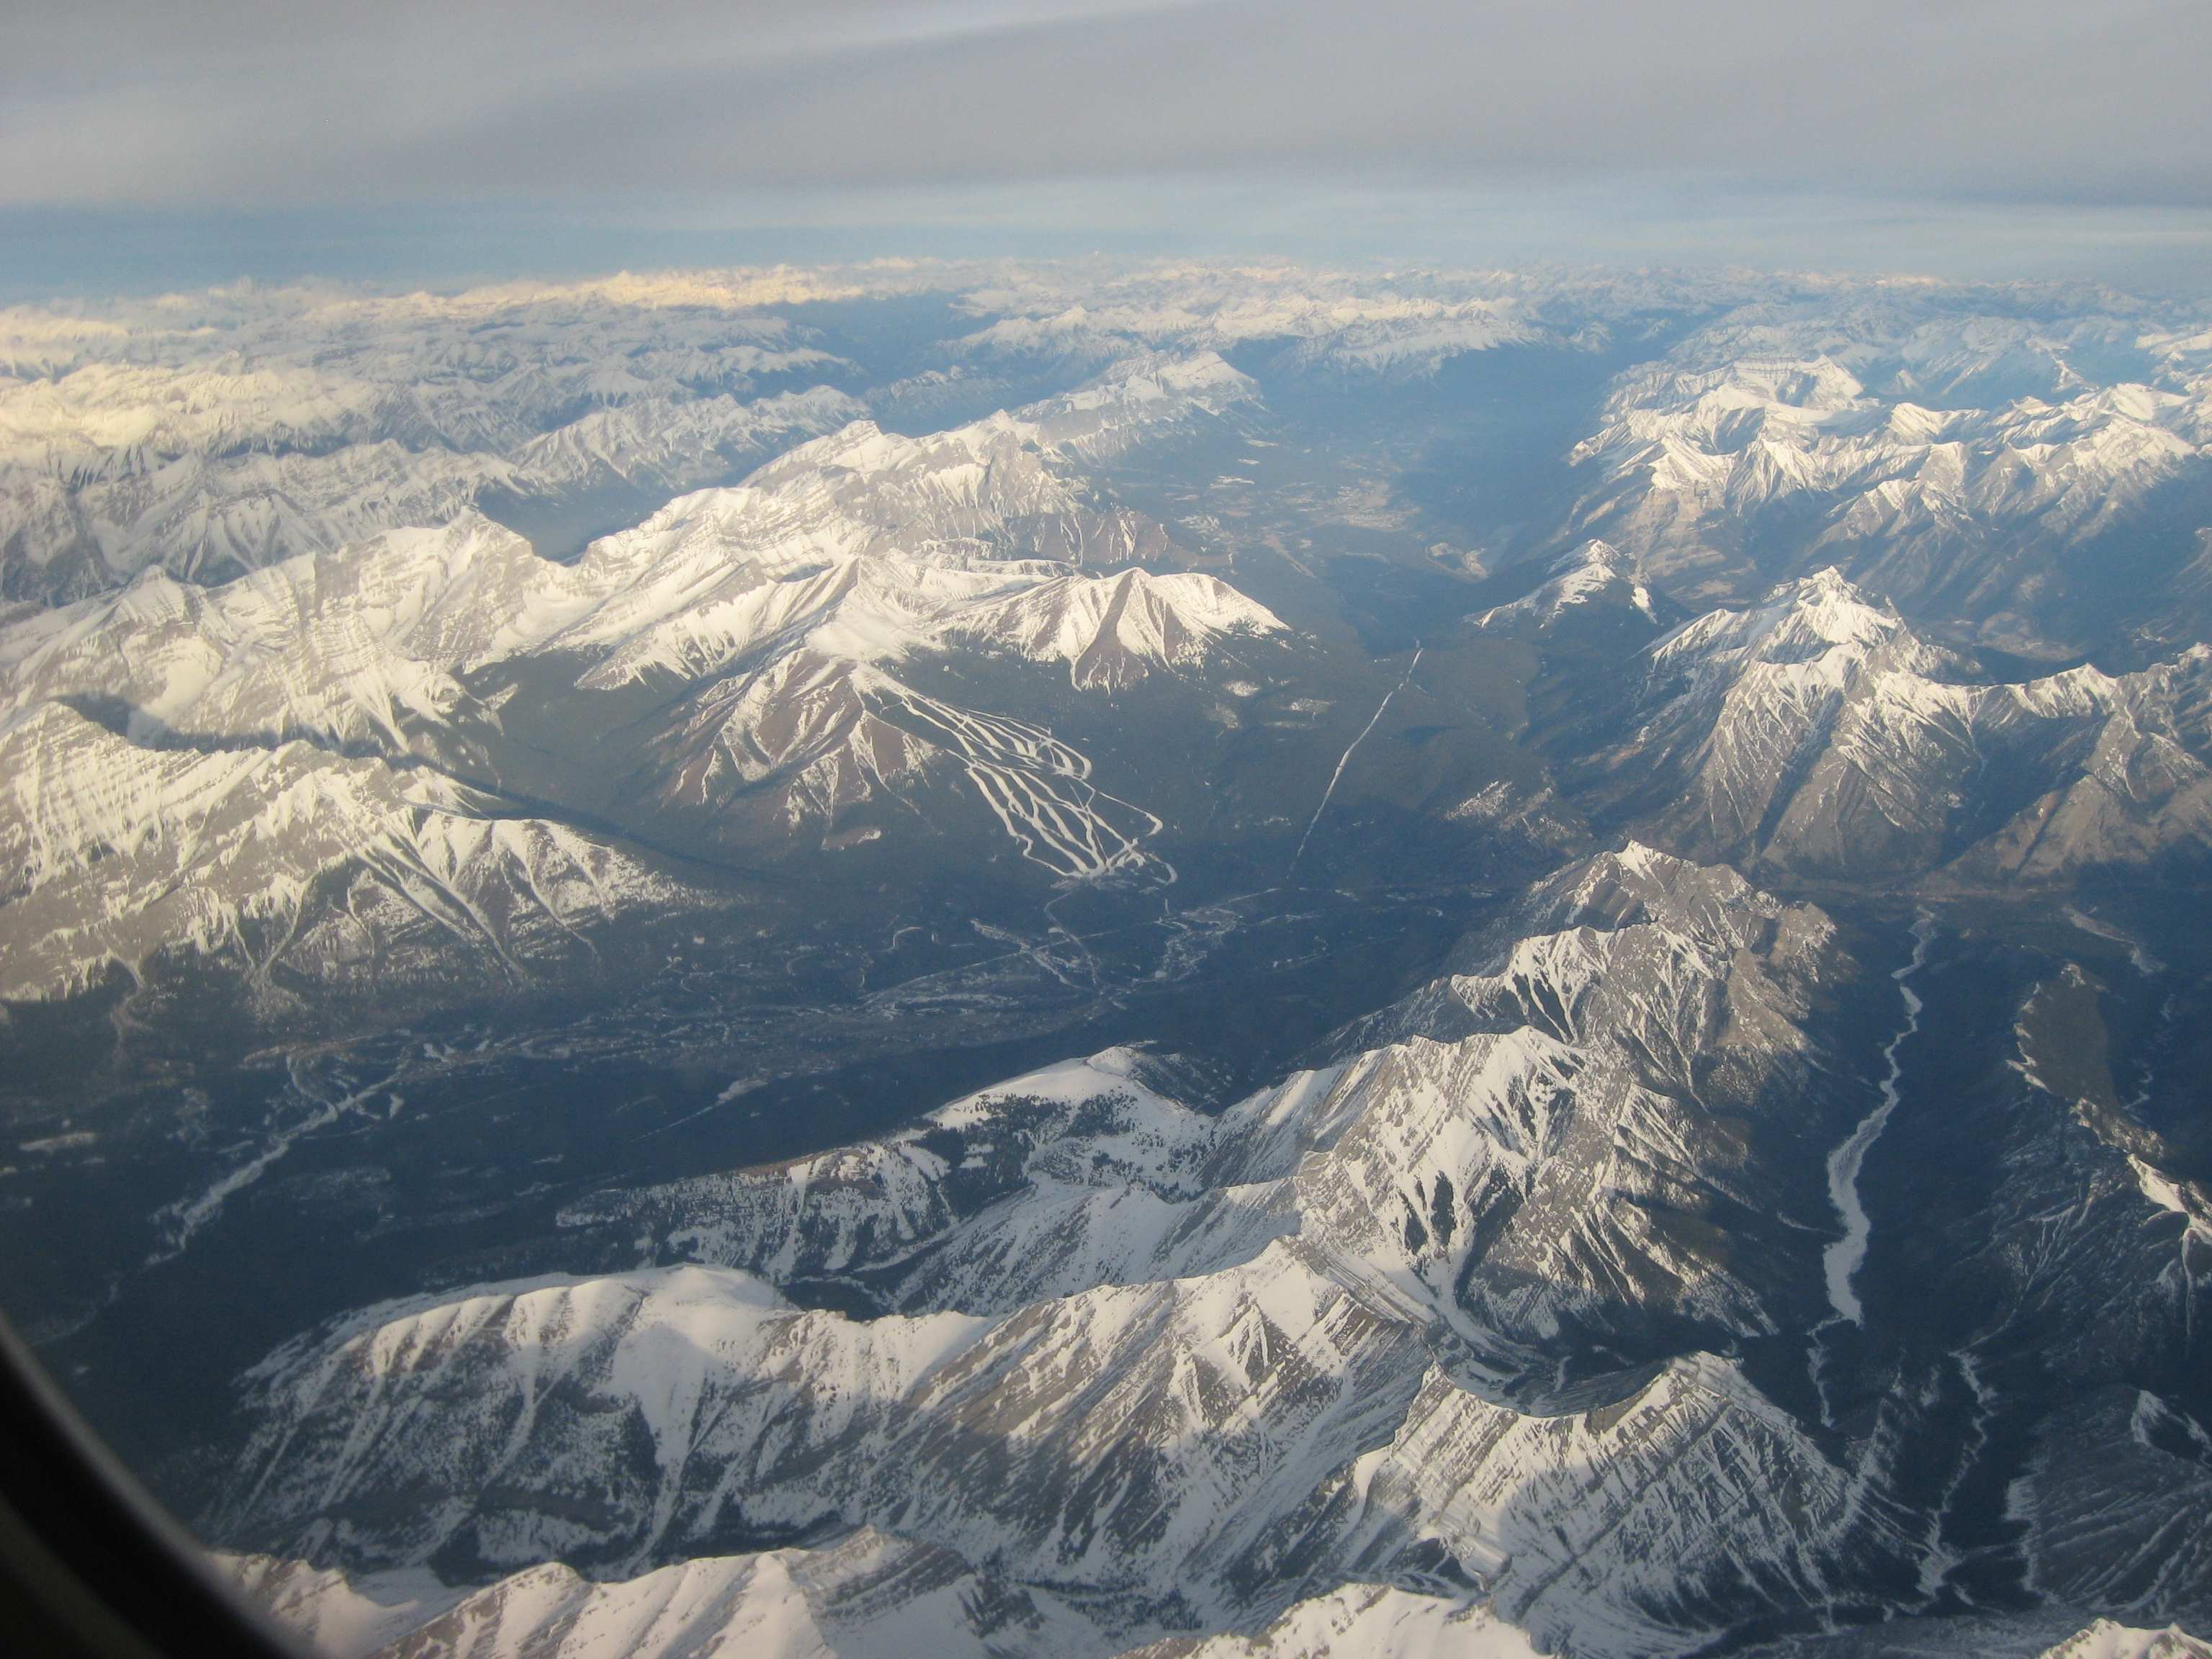 Aerial View of the Canadian Rockies in Winter